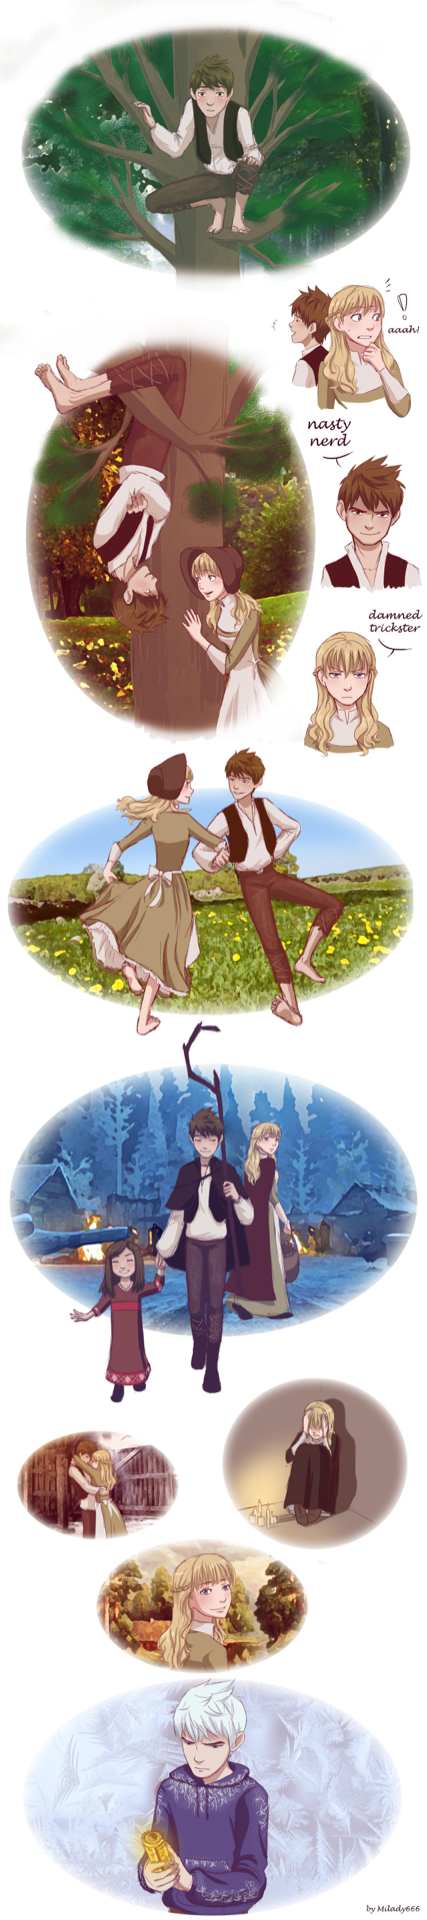 Jack and Rapunzel in their first life